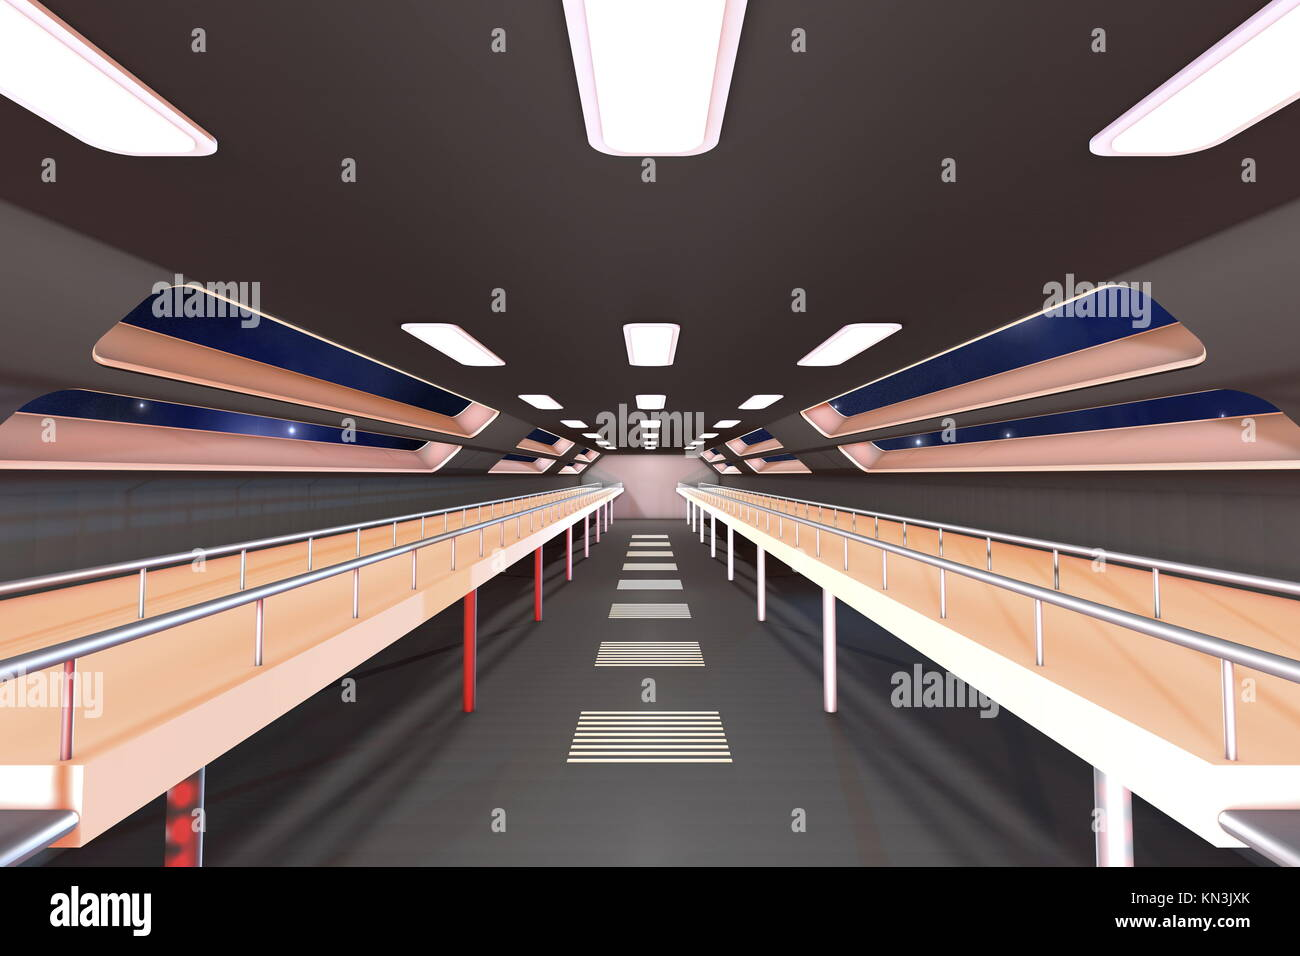 Space station Interior. 3D Architecture visualization. - Stock Image